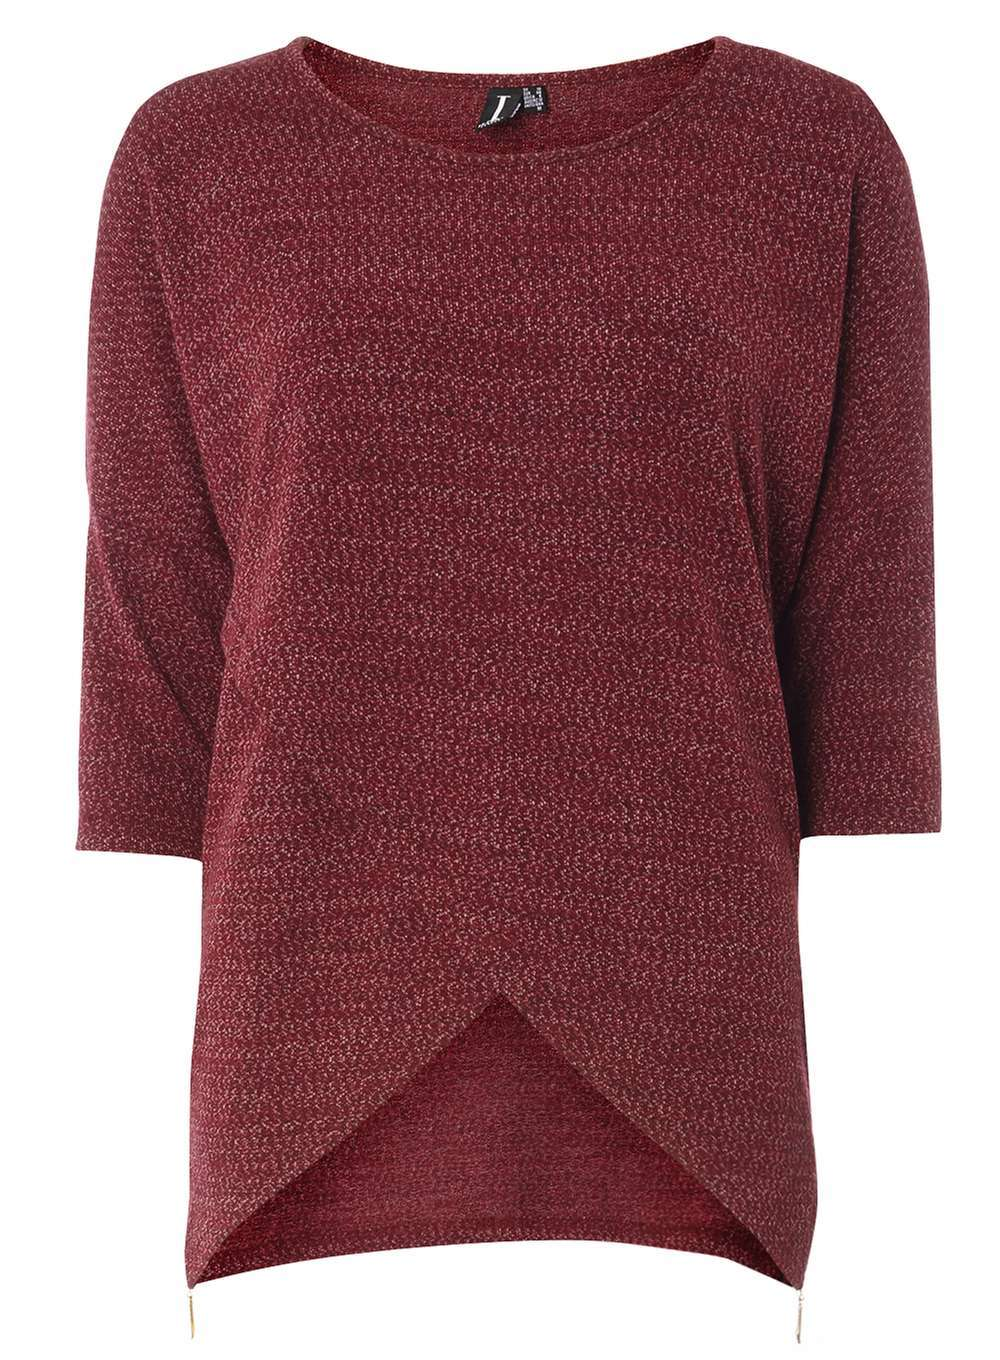 Womens *Izabel London Burgundy Top Red - neckline: round neck; pattern: plain; predominant colour: burgundy; occasions: casual; length: standard; style: top; fit: body skimming; sleeve length: 3/4 length; sleeve style: standard; texture group: knits/crochet; pattern type: fabric; fibres: viscose/rayon - mix; season: a/w 2016; wardrobe: highlight